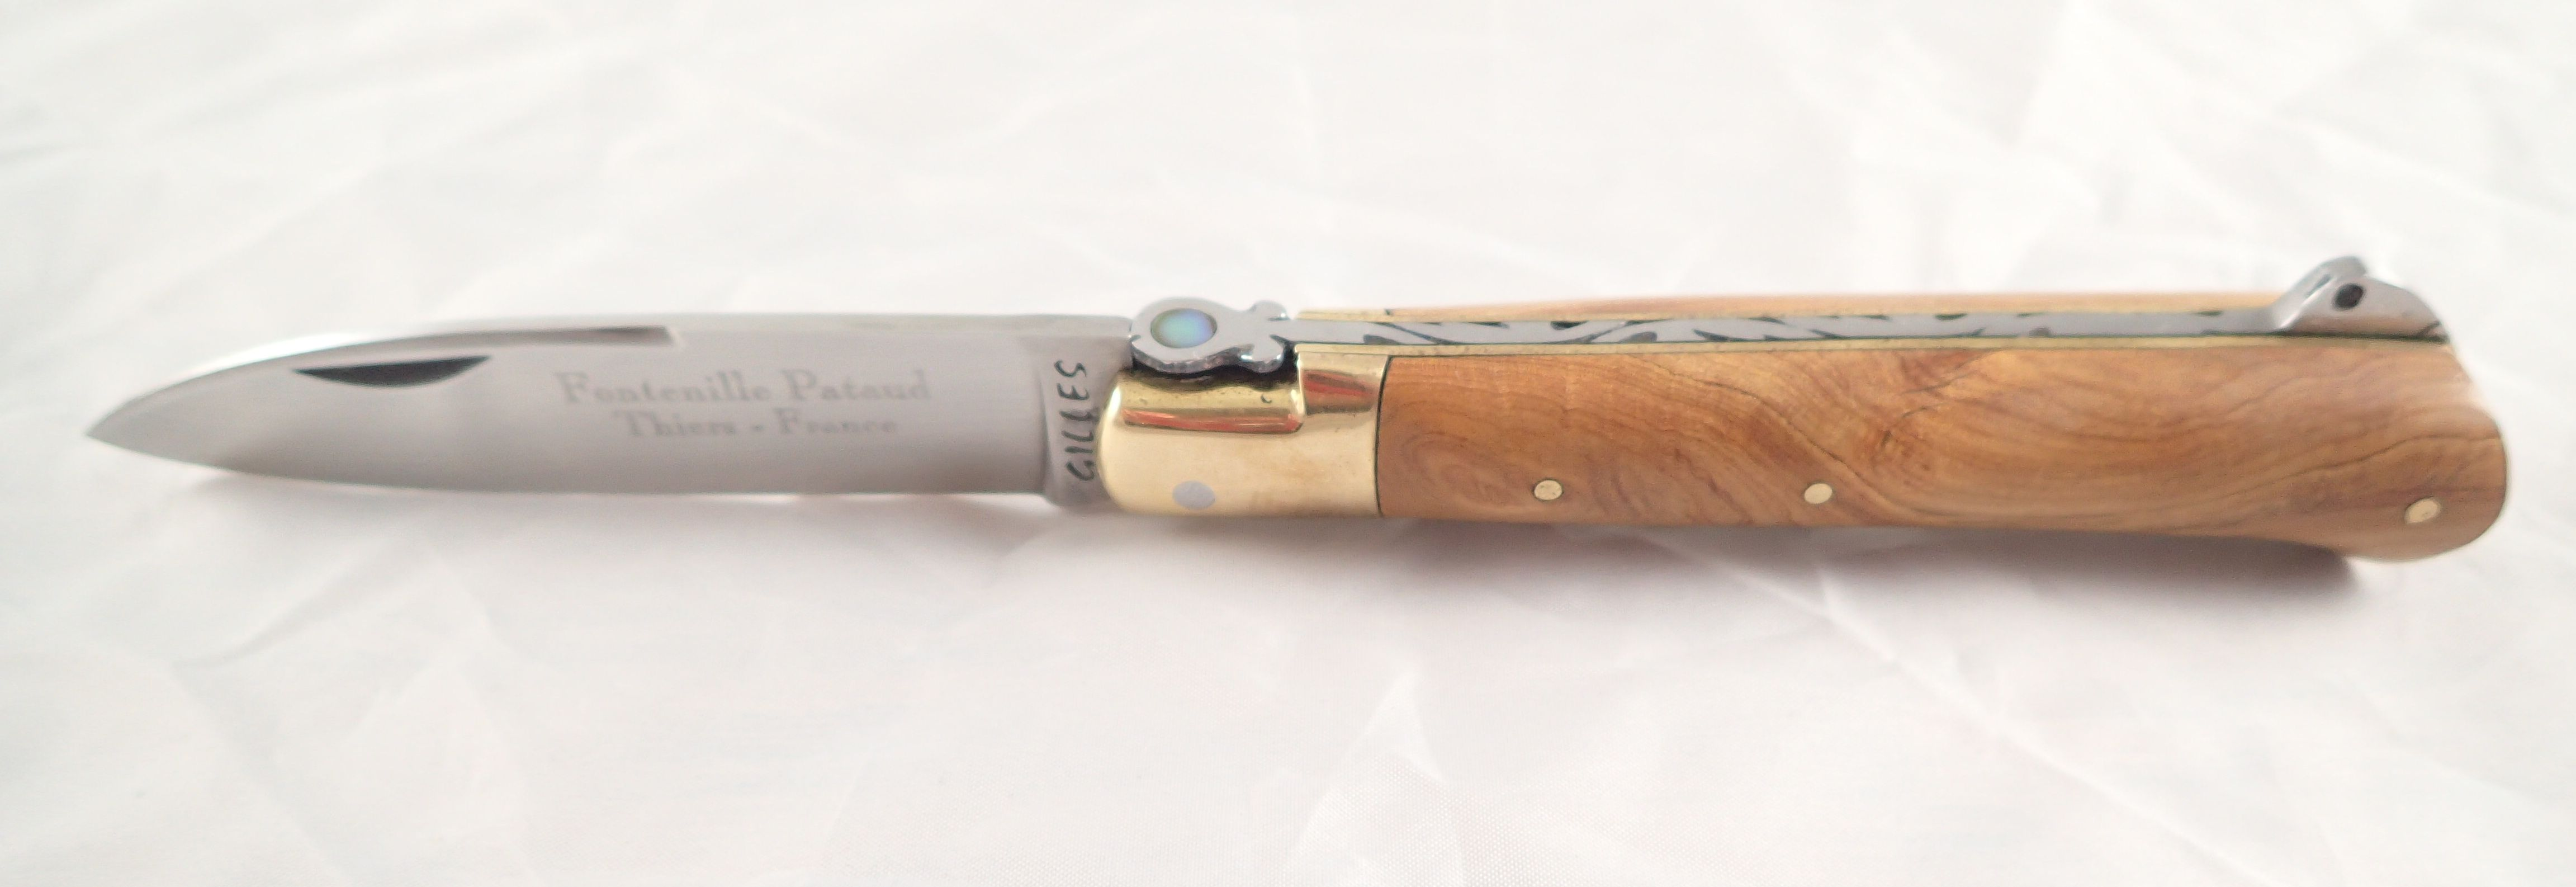 Fontenille Pataud Yssingeaux Knife Olivewood Cutlery